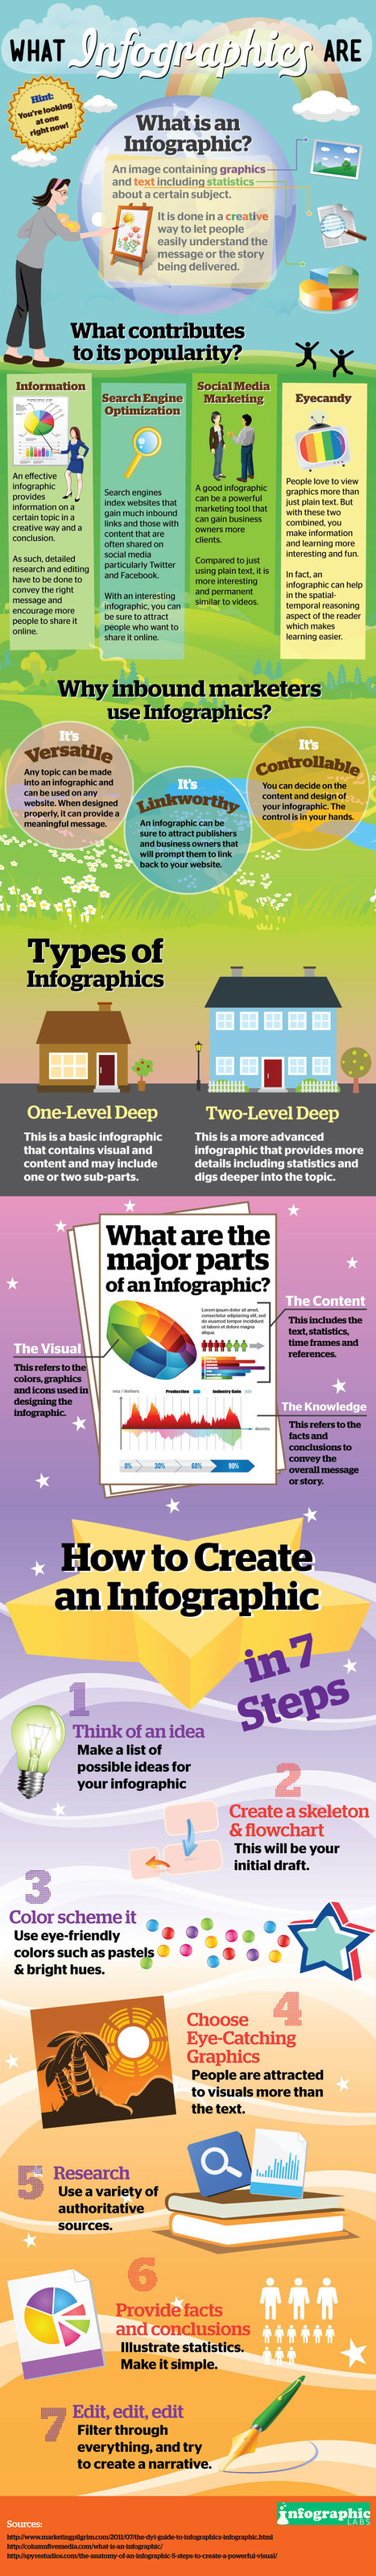 How To Create Your Own Infographics In 7 Steps [Infographic] | The Mobile and Social Marketing Nuggets Scoop! | Scoop.it